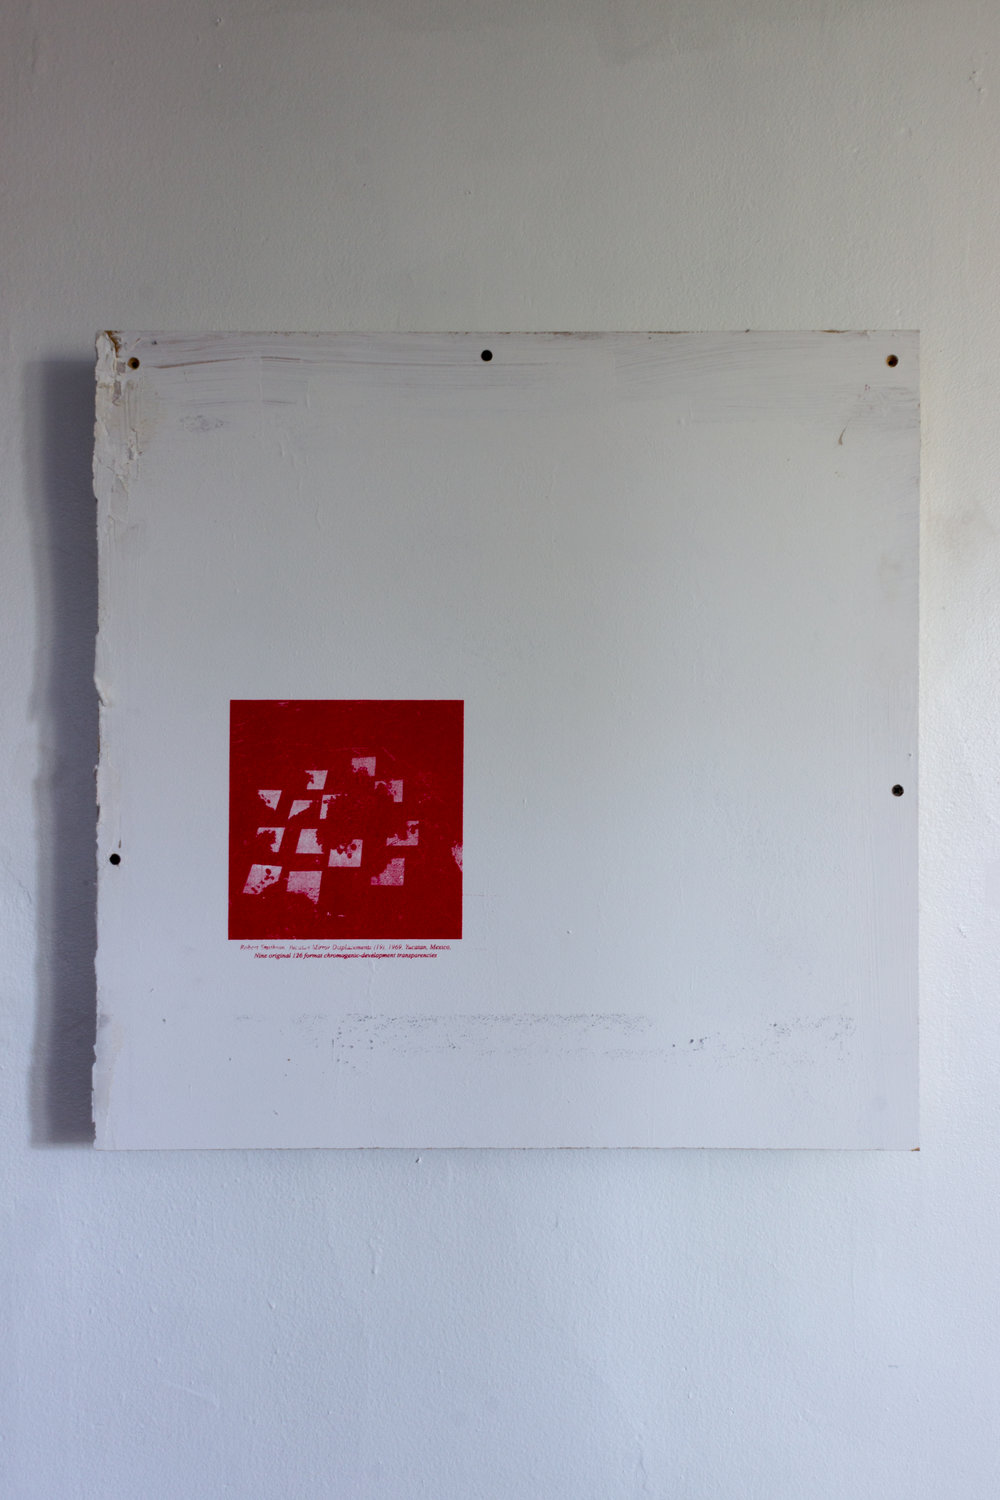 Evan Fusco,  language proposition IV (an image of Robert Smithson's work which exemplifies the mutability if a site through simple means),  2018, screenprint on wall panel